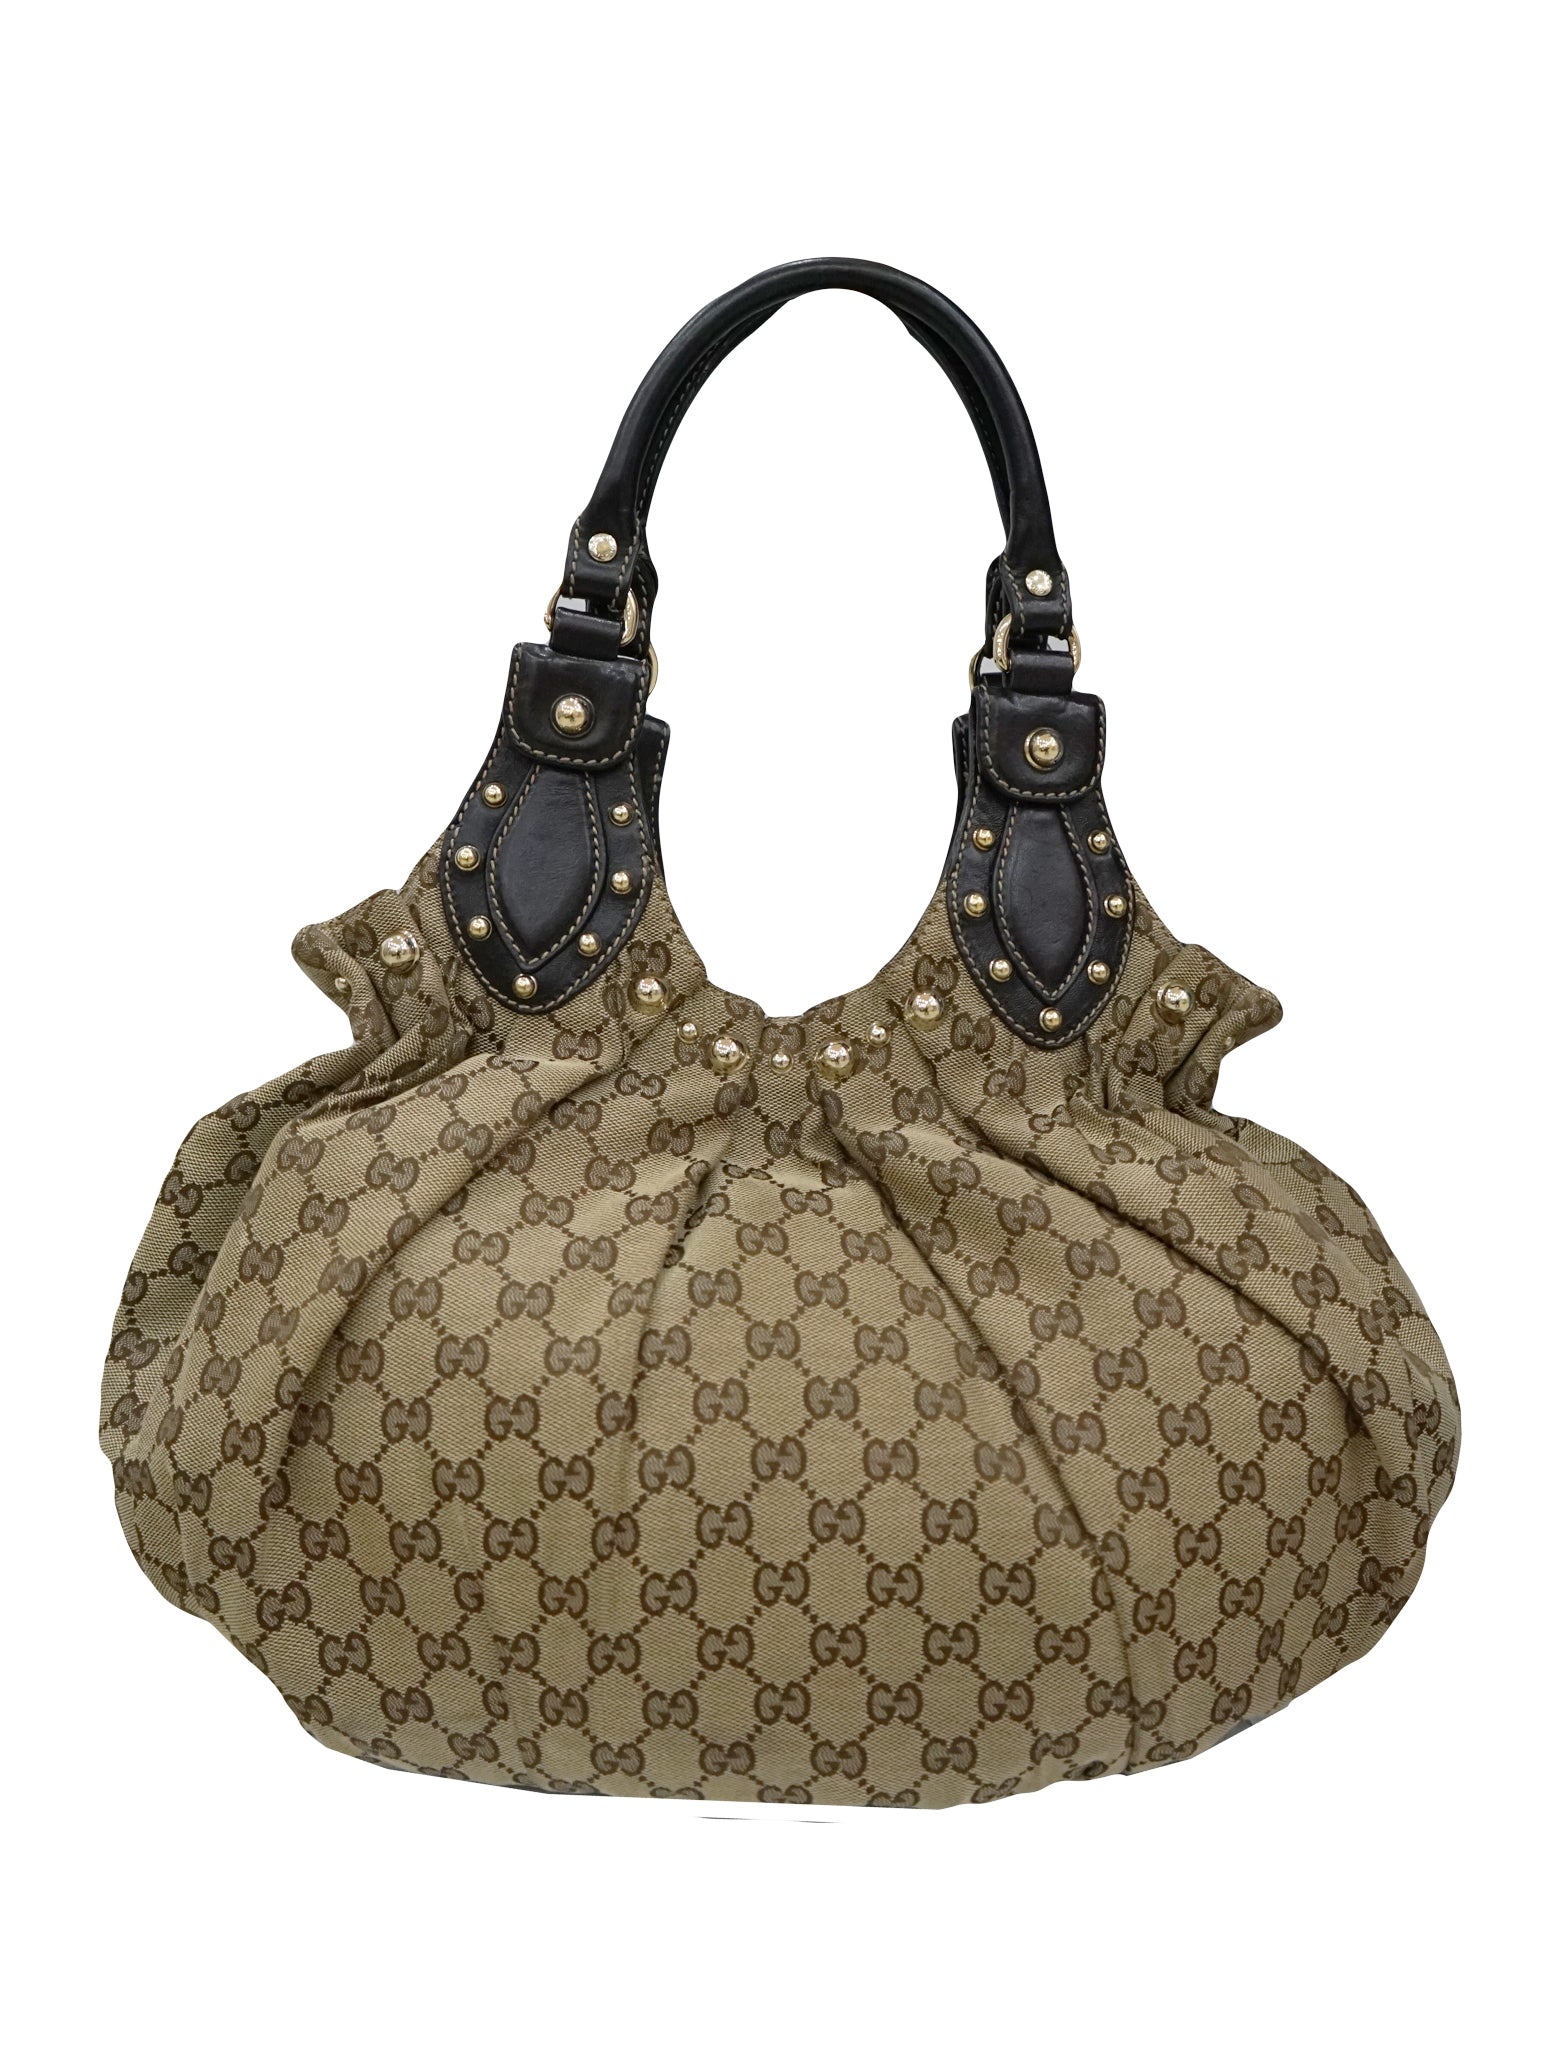 6a1c8caa29a GUCCI STUDDED GG CANVAS PELHAM SHOULDER BAG – Kidsstyleforless